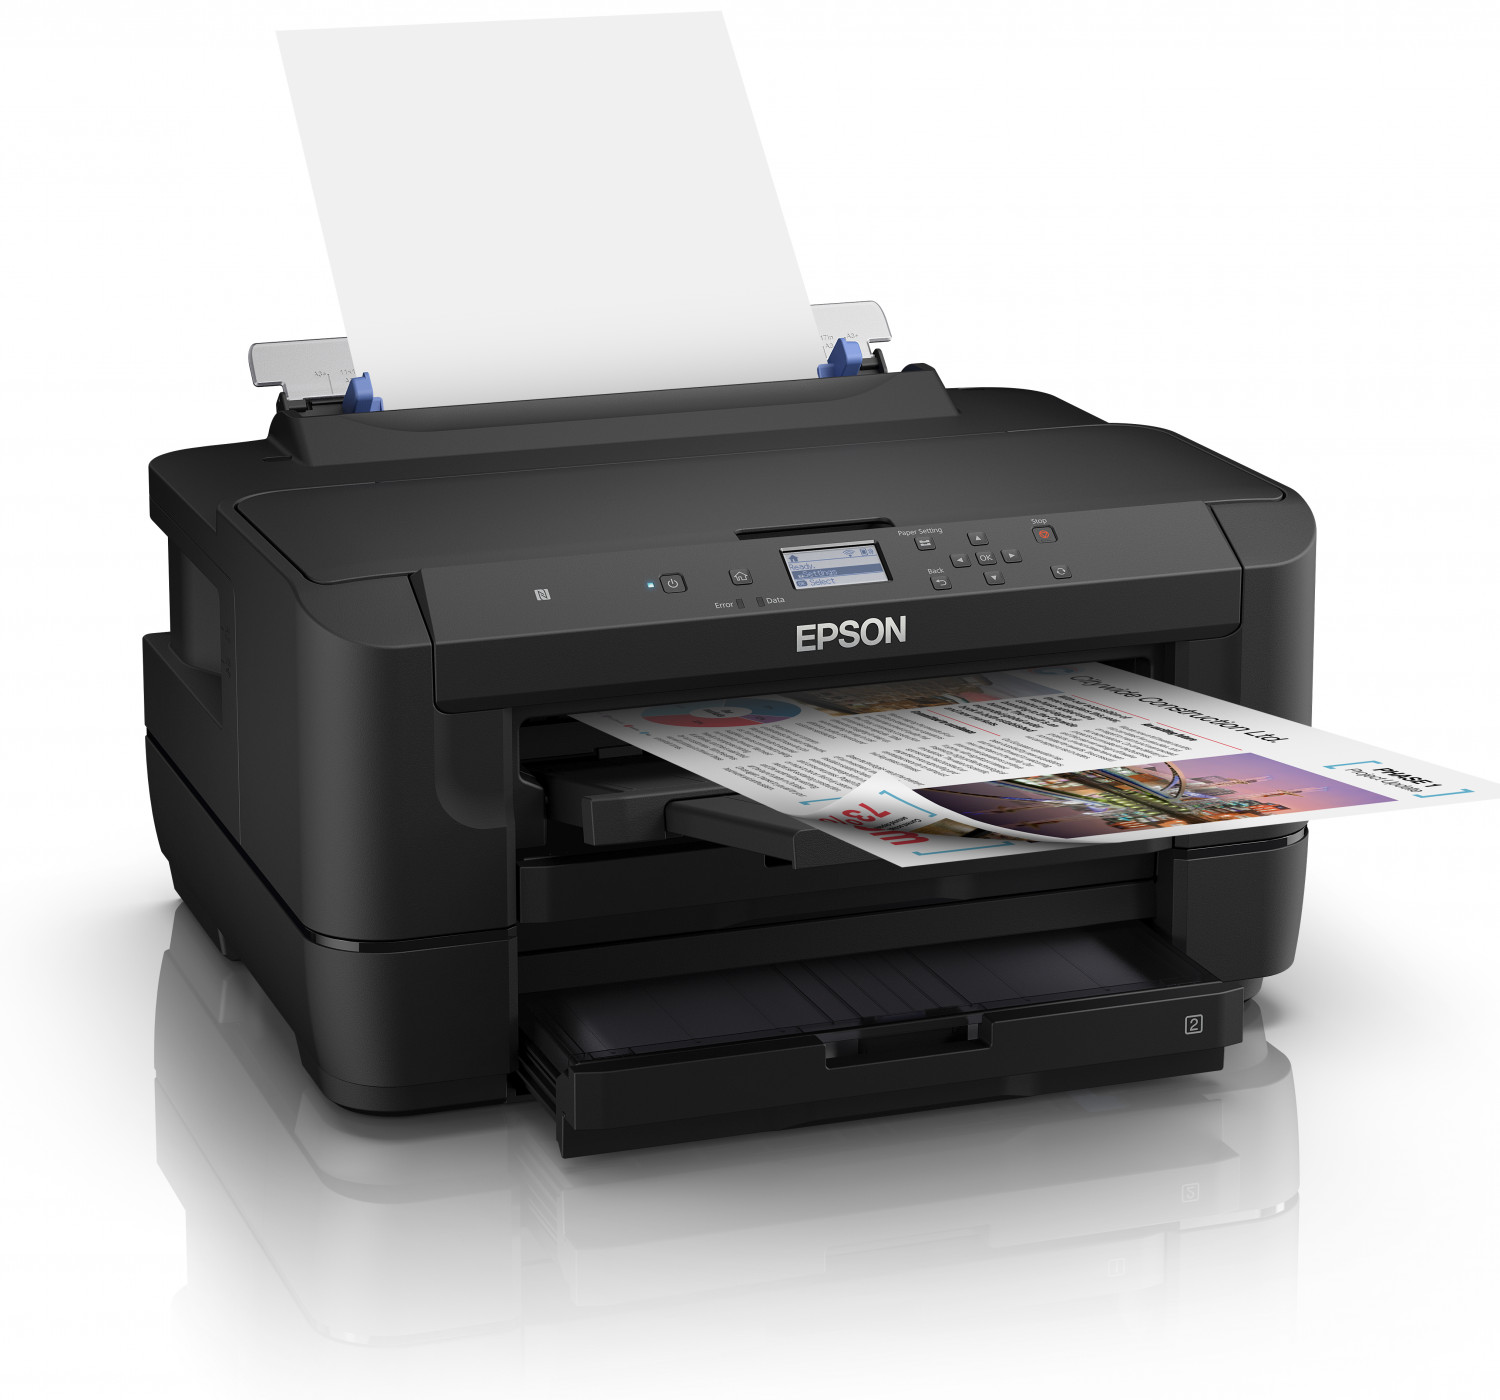 epson WORKFORCE WF 7210DTW driver colour printer download for window 1